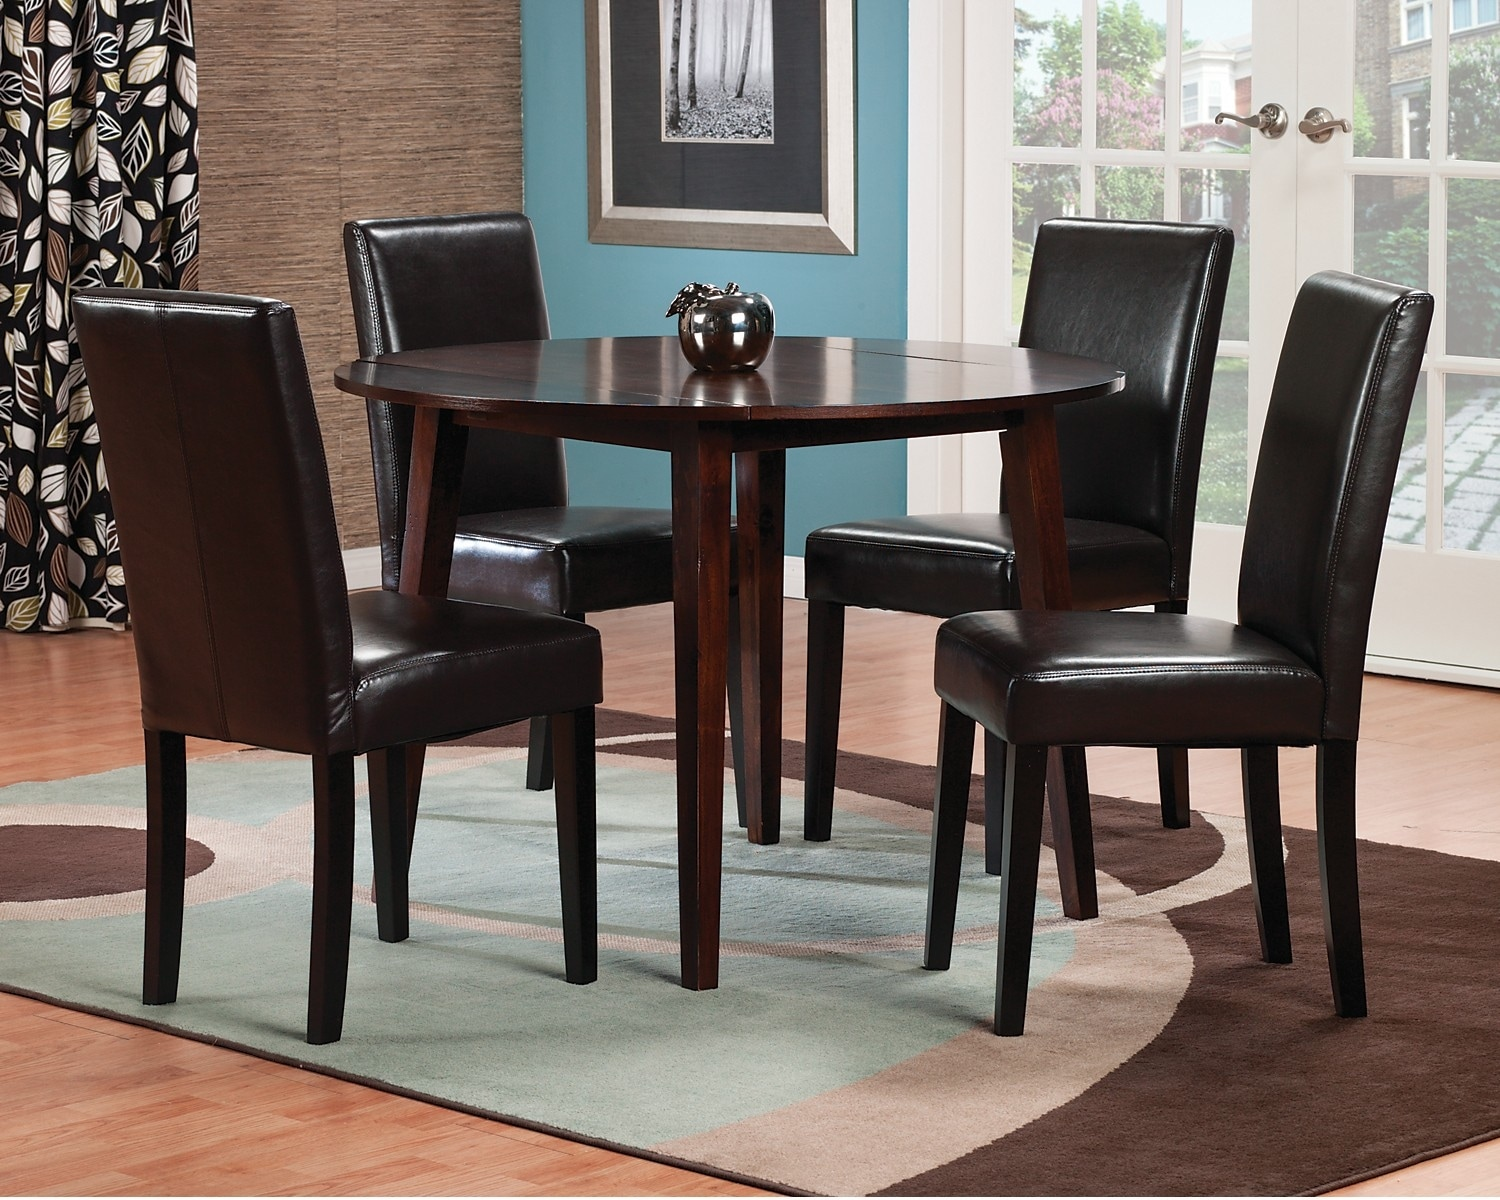 Dining Room Furniture - Adara 5-Piece Round Dining Package with Brown Accent Chairs